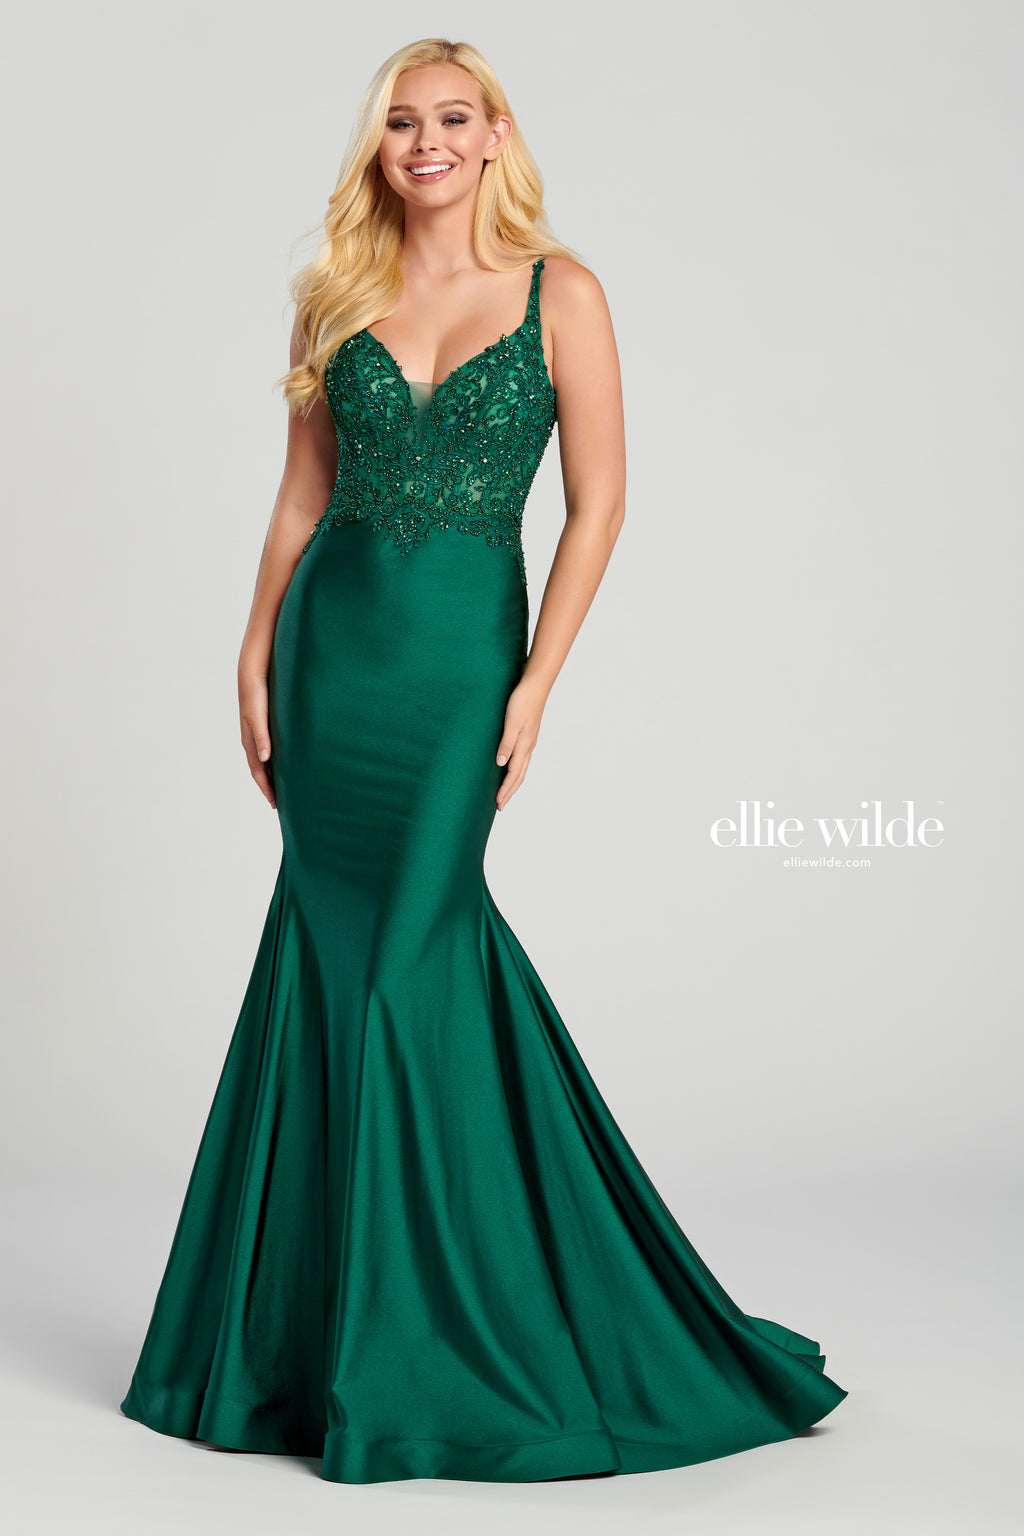 Ellie Wilde Emerald Satin Evening Gown - Gissings Boutique